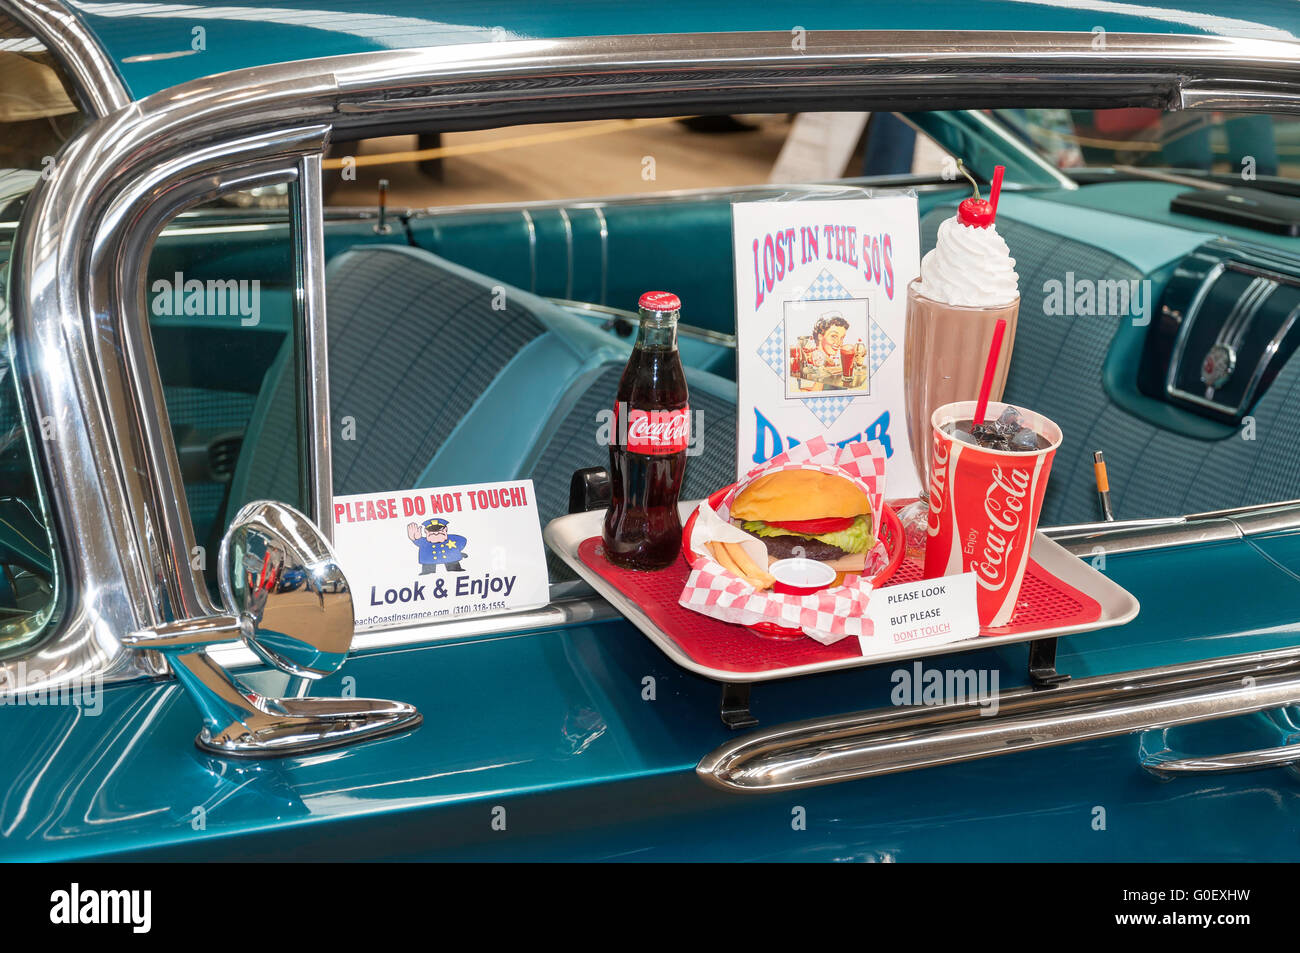 Diner meal tray on door of Chev Impala National Hot Rod Show Au0026P showground Wigram Christchurch Canterbury New Zealand & Diner meal tray on door of Chev Impala National Hot Rod Show Au0026P ...